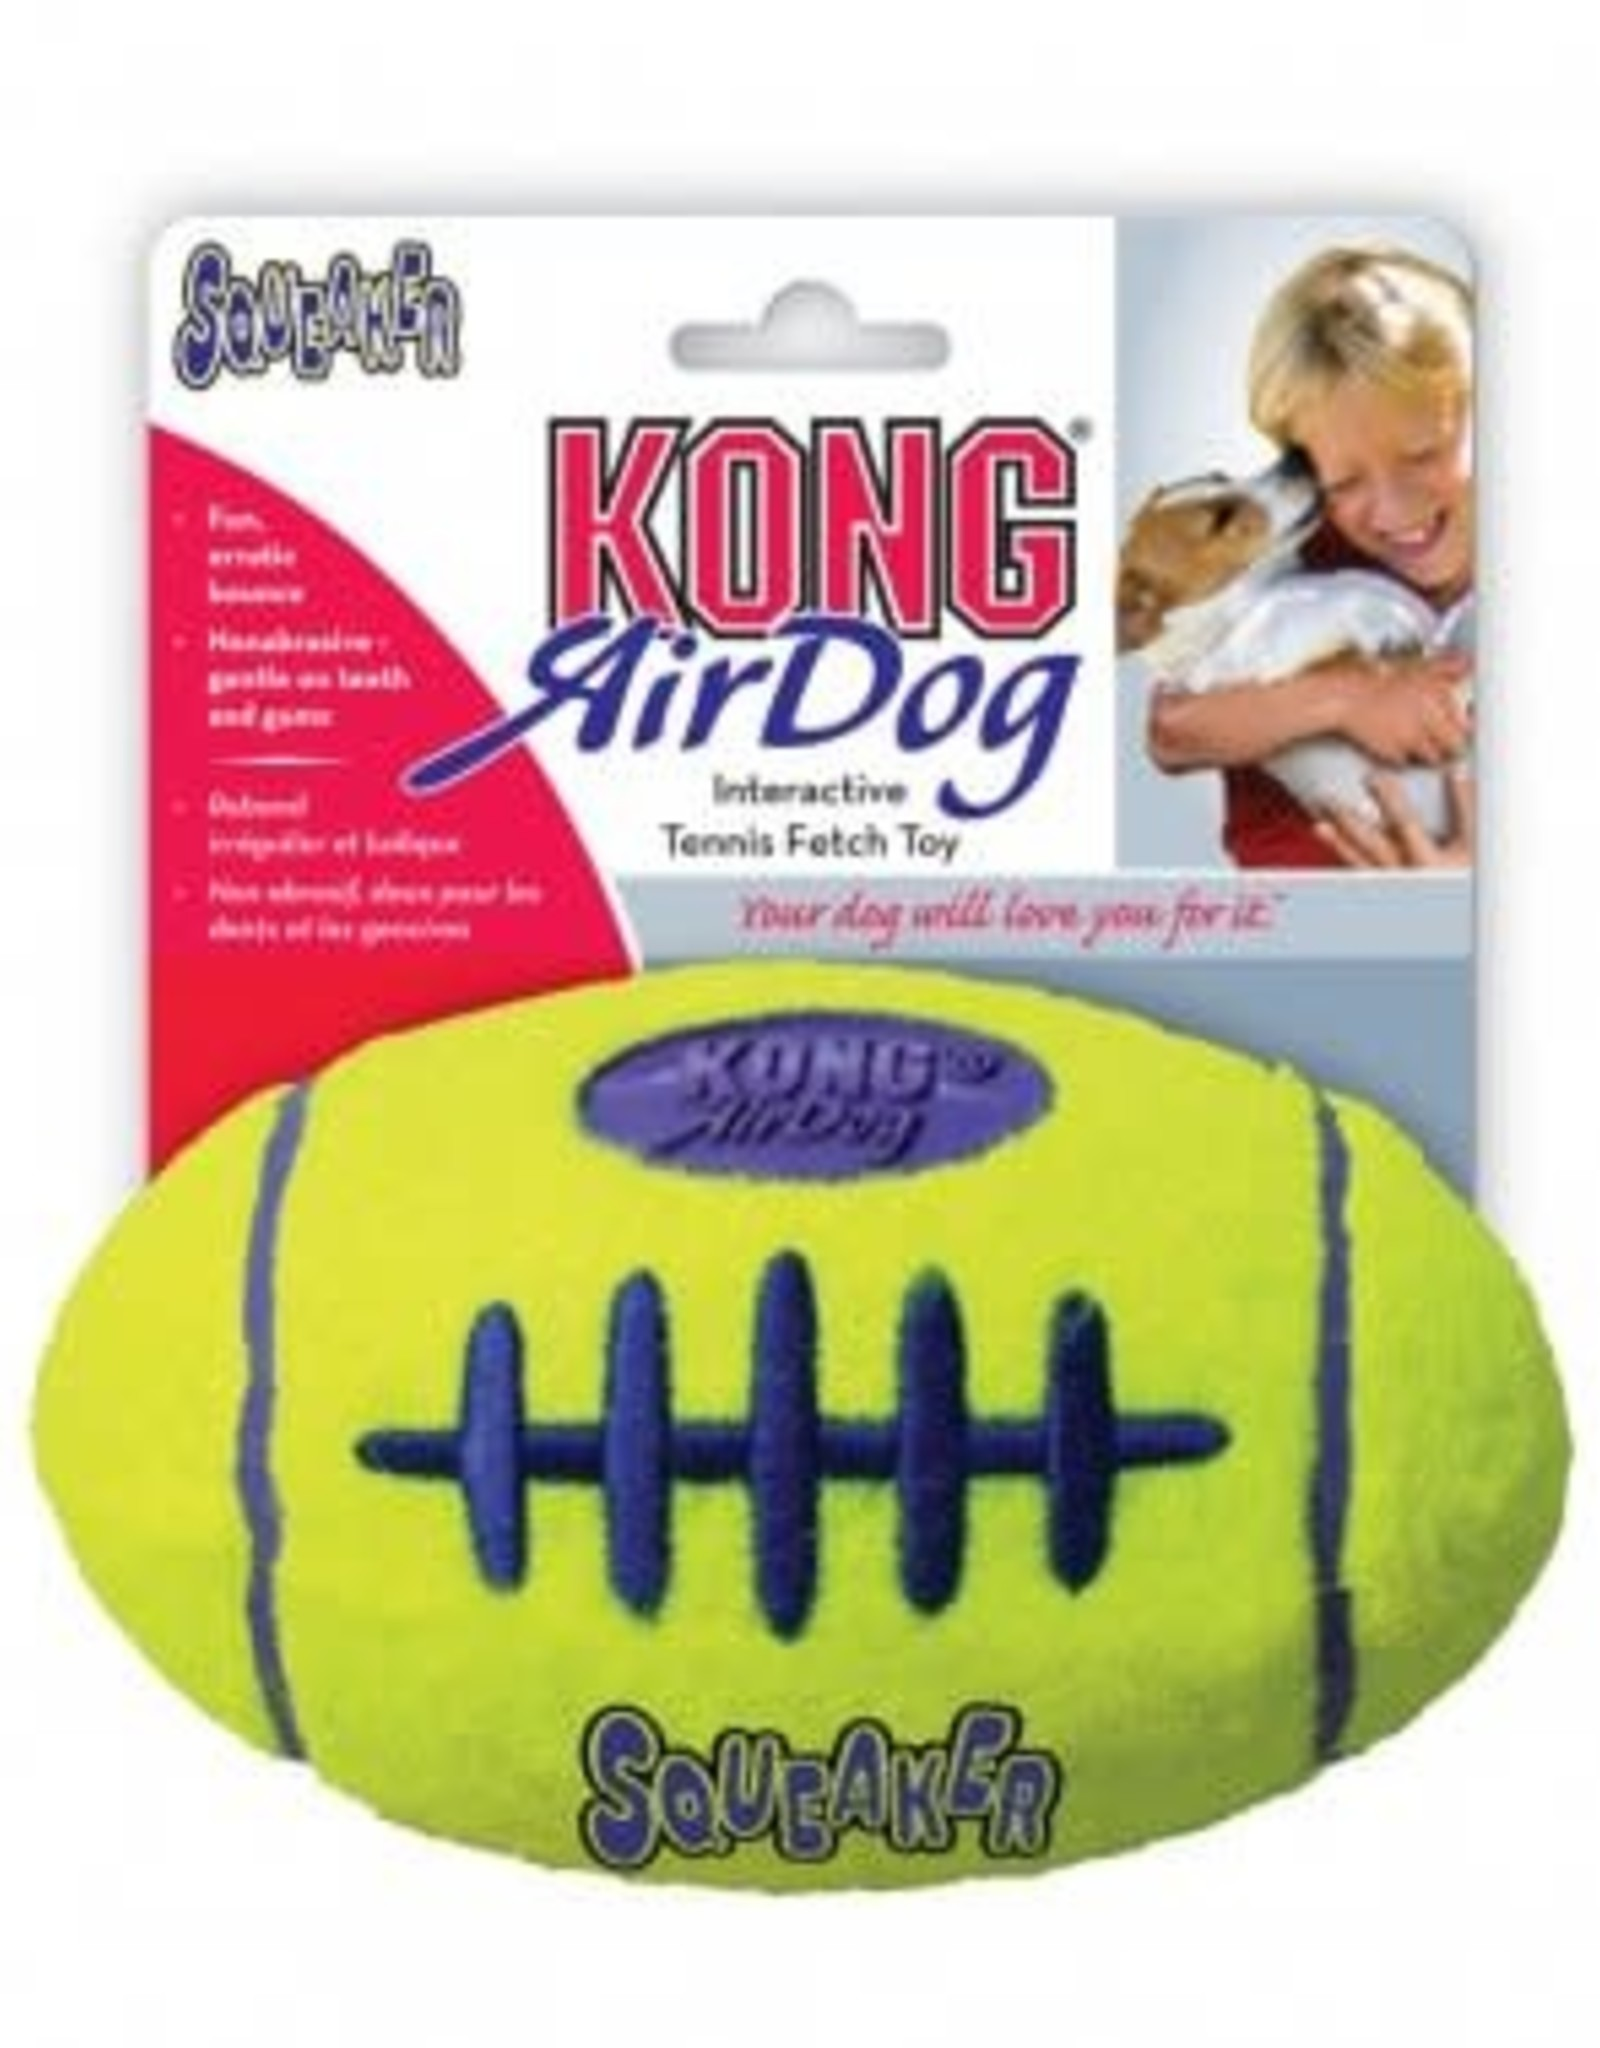 Kong Airdog Football